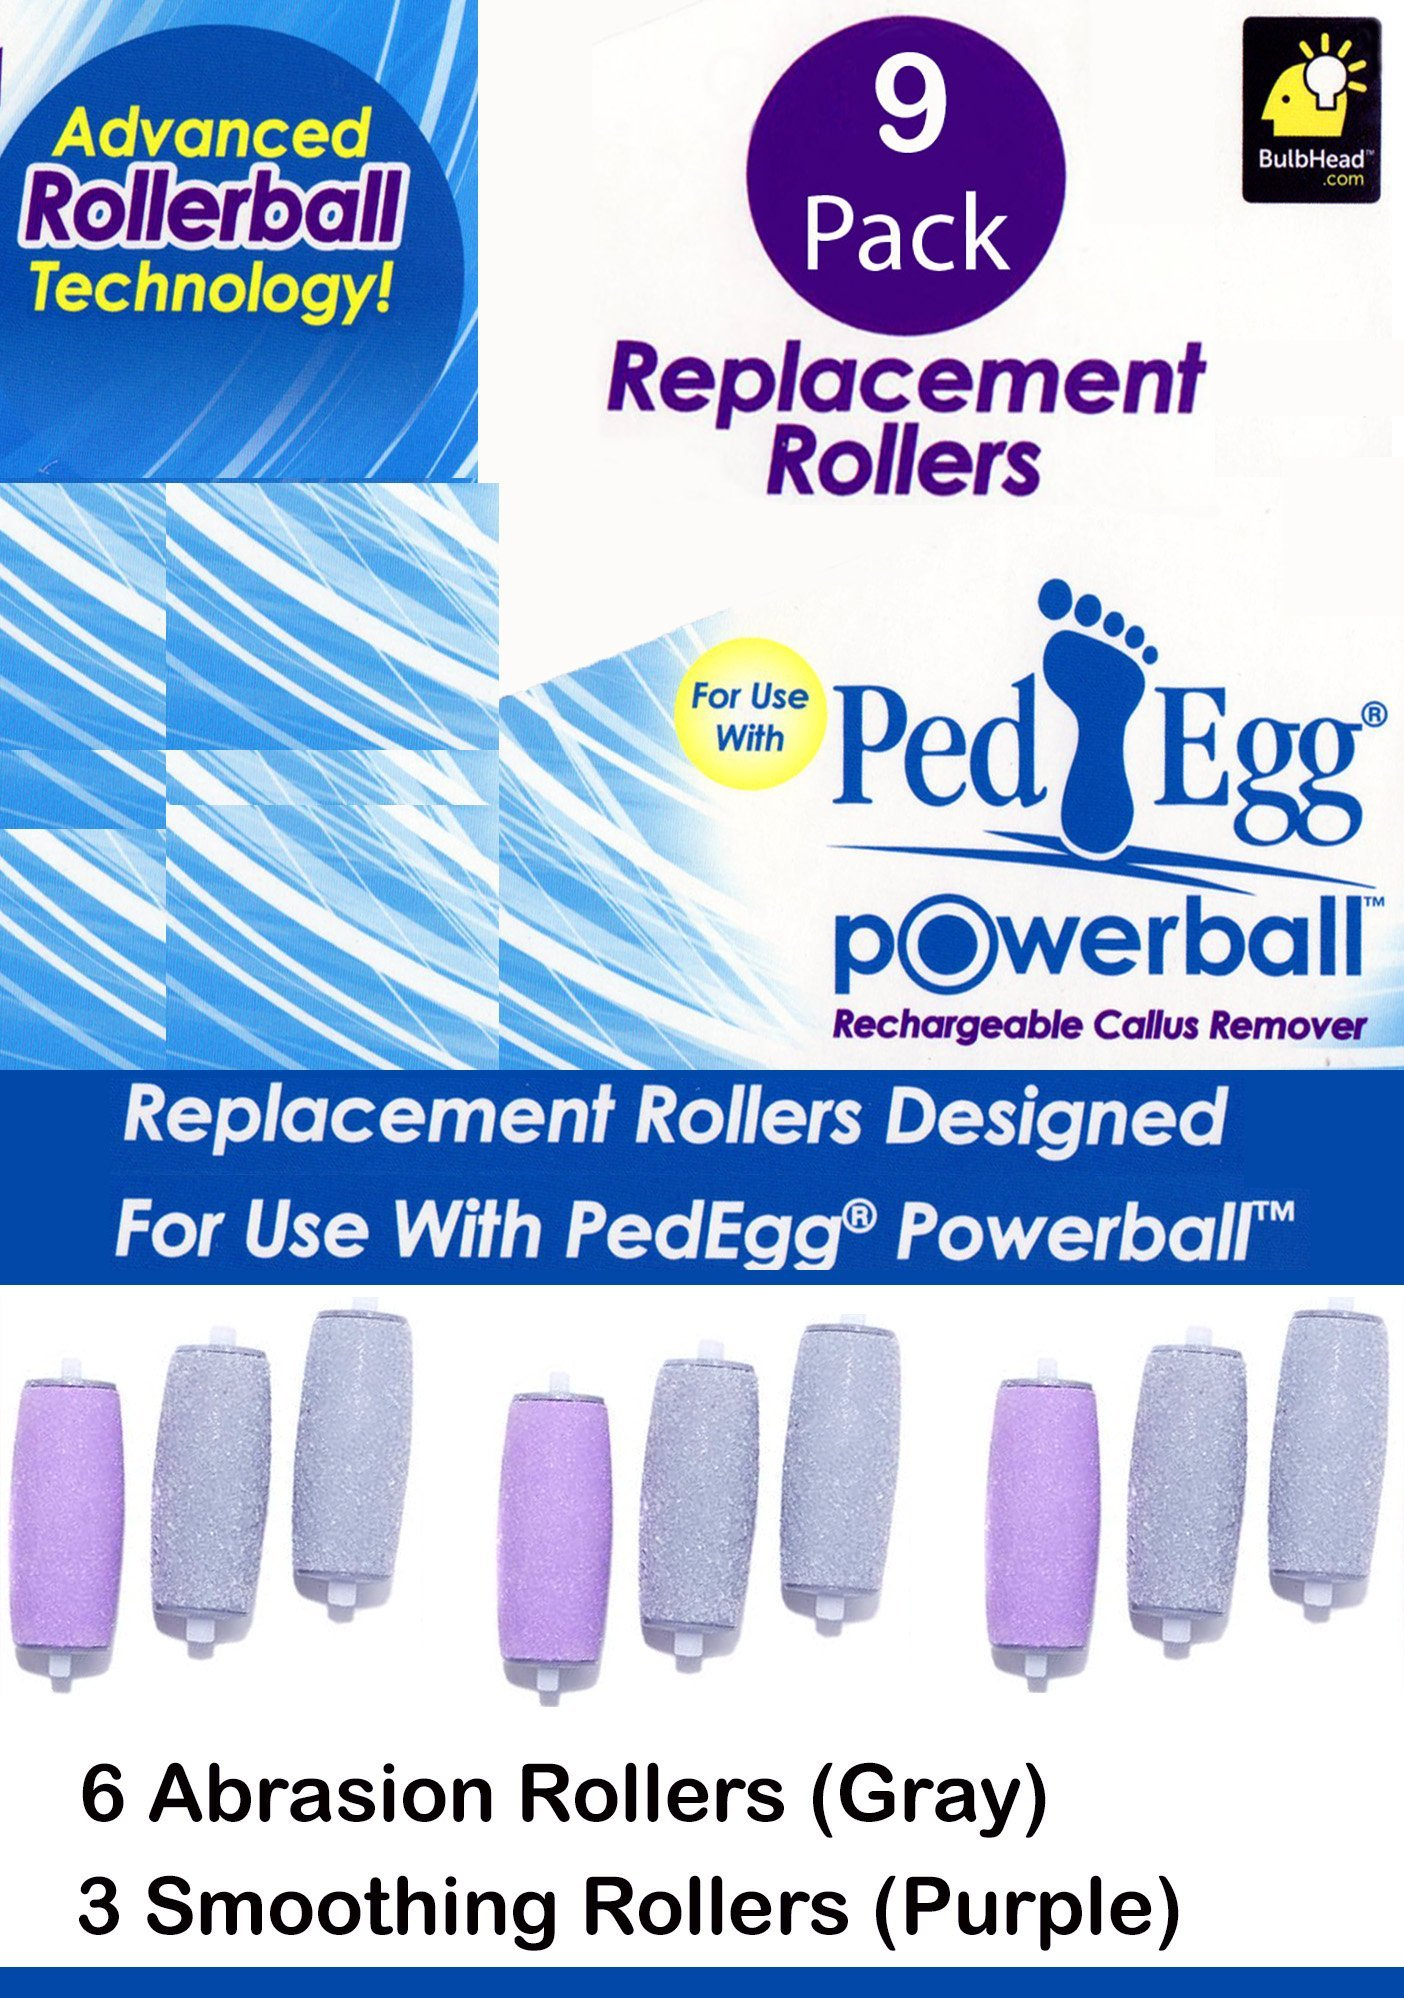 9 Pack Replacement Rollers for PedEgg Powerball Rechargeable Callus Remover